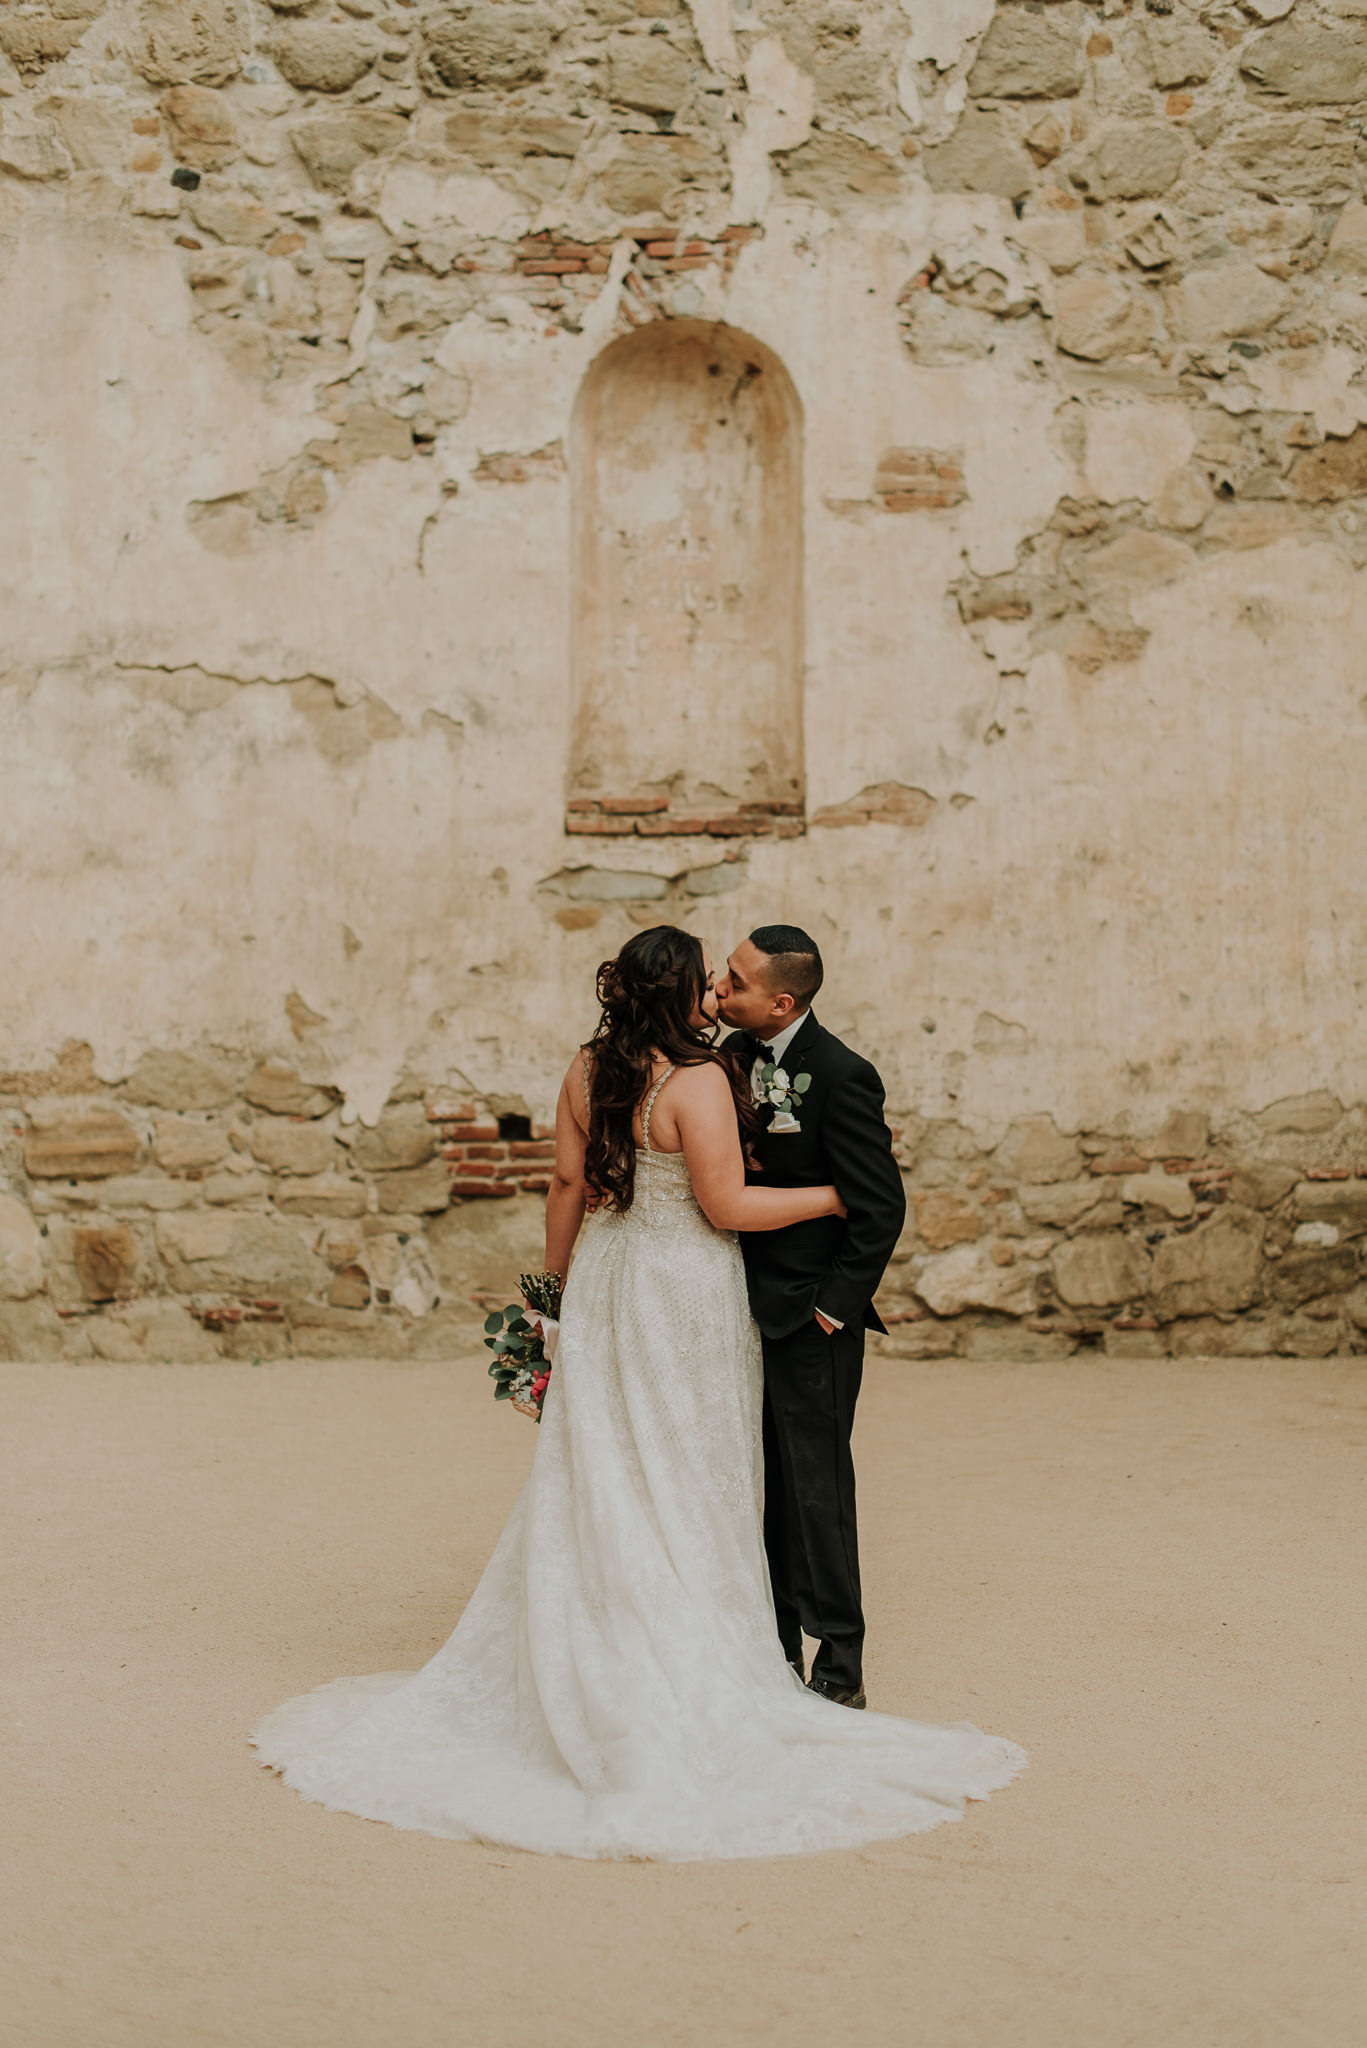 2019-04-05_Brittany_and_Nick_-_Married_-_San_Juan_Capistrano-106.jpg